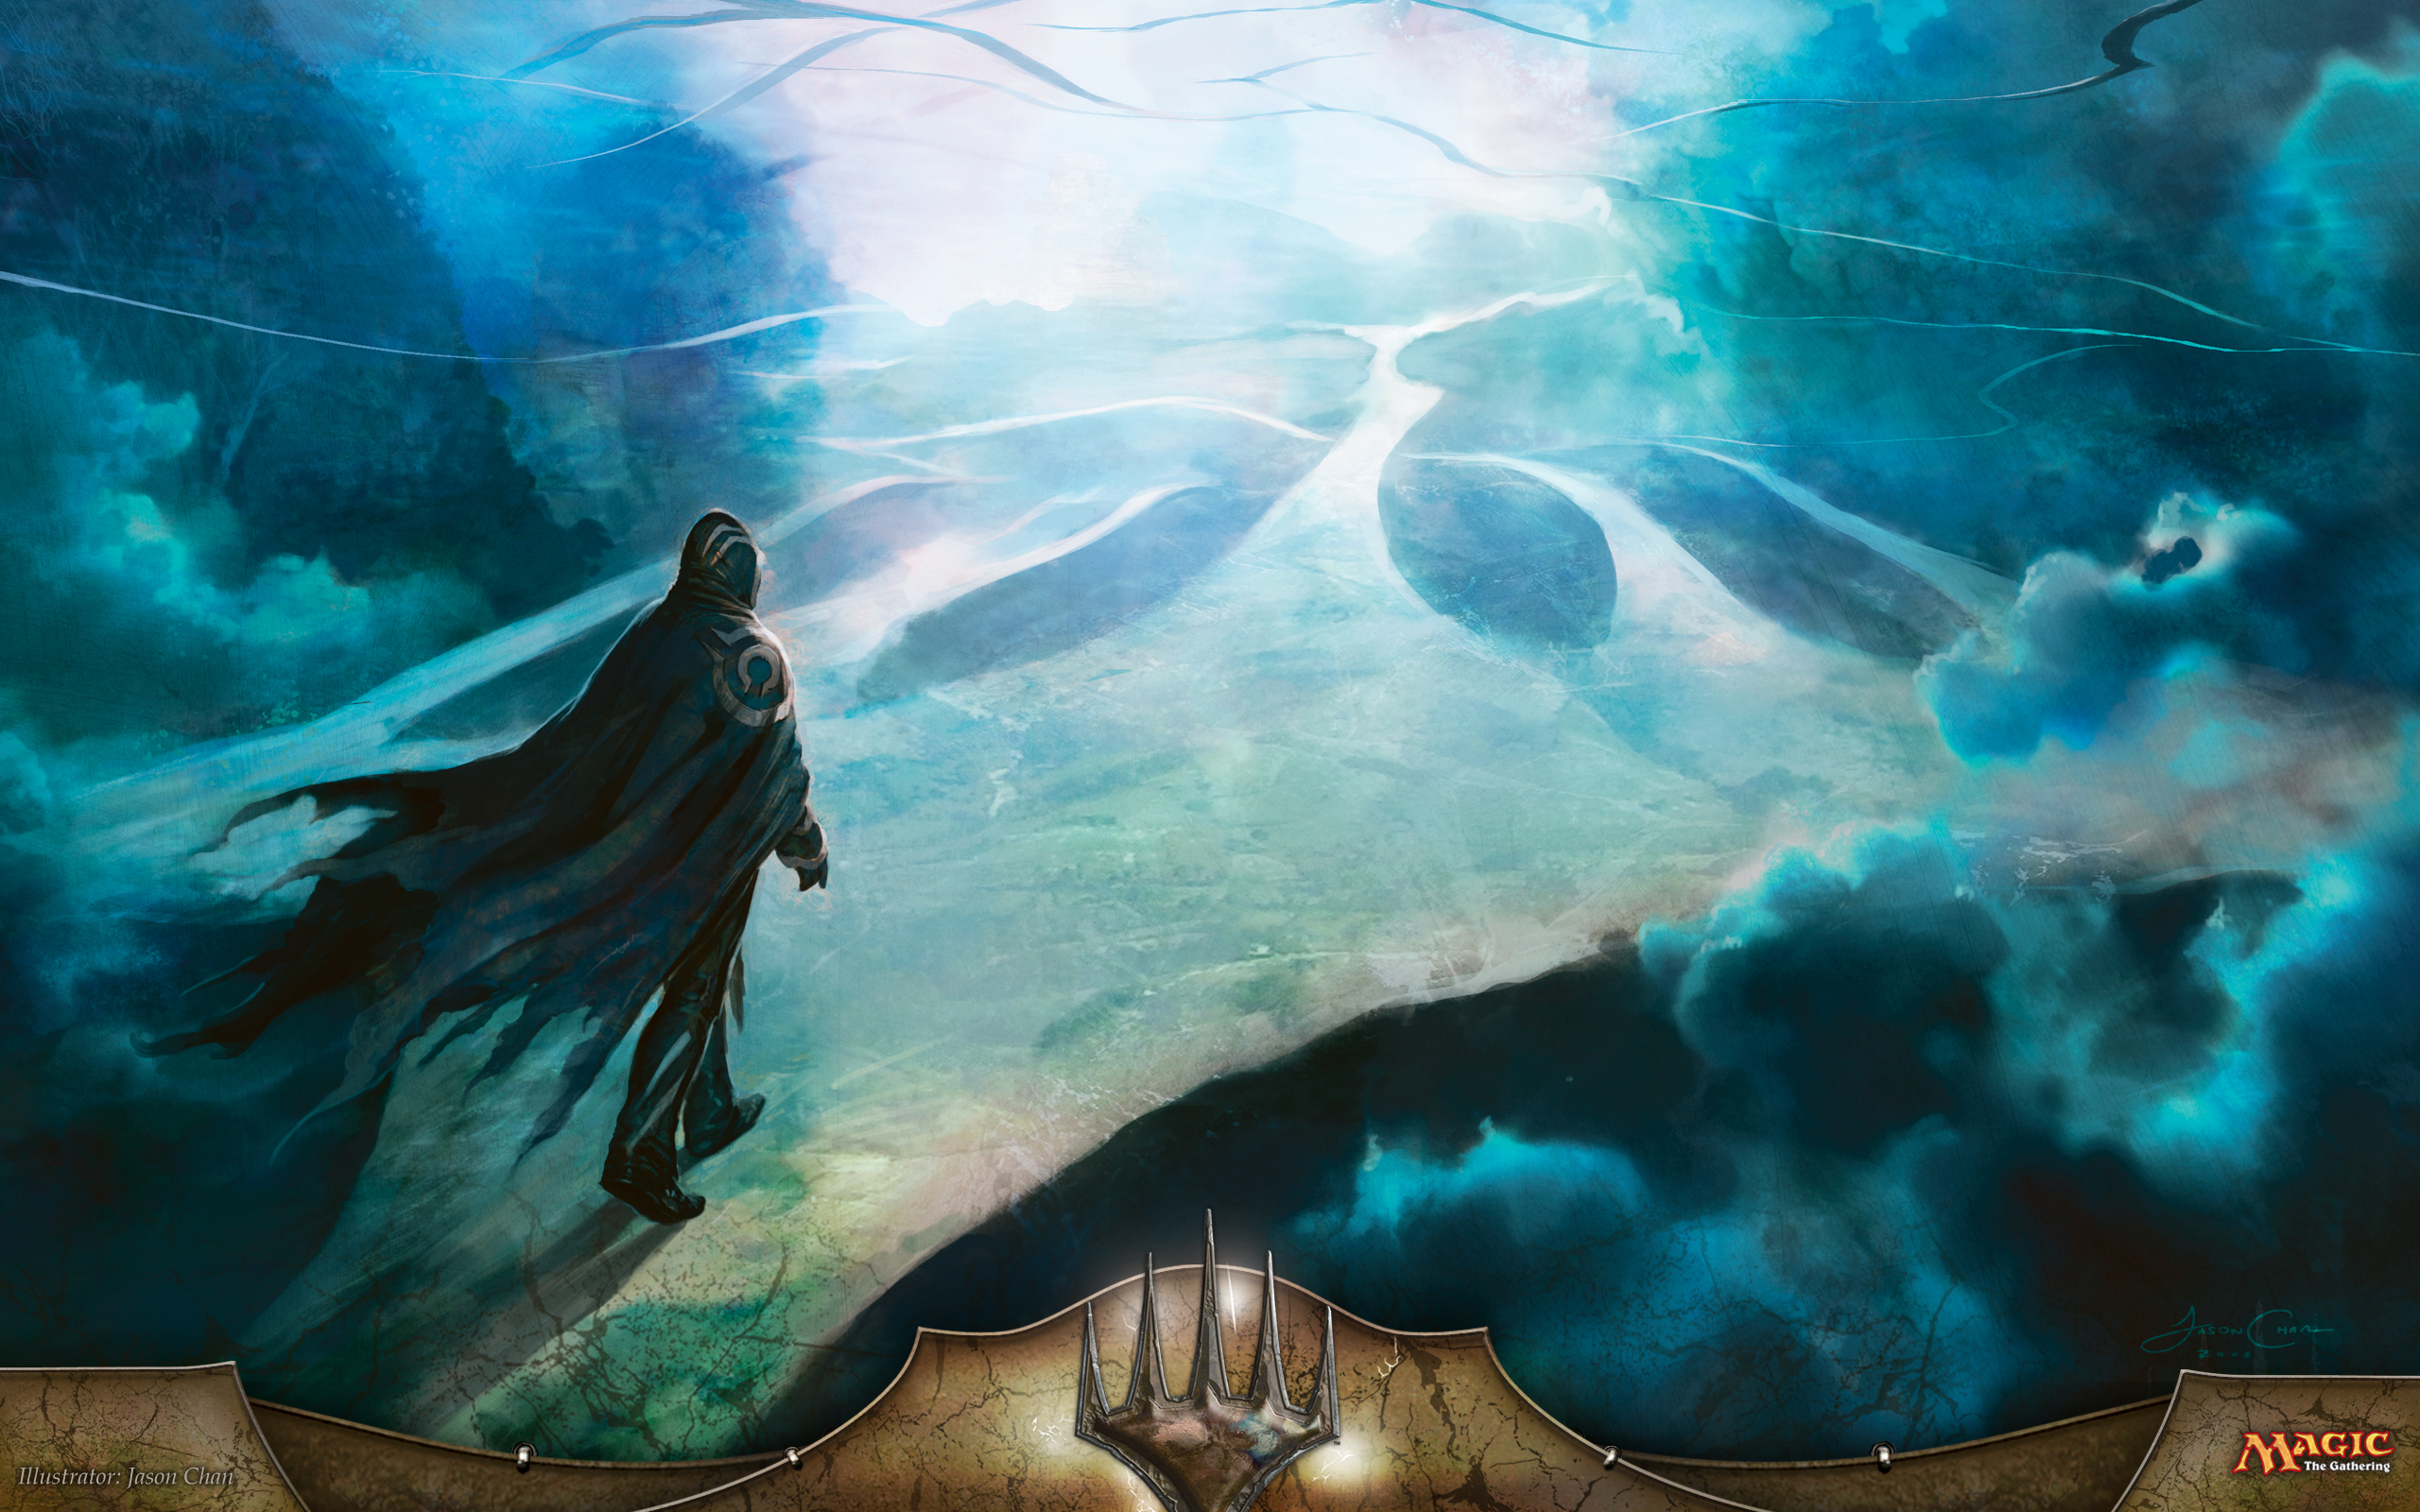 Magic The Gathering Artwork Jace Beleren Jason Chan Free